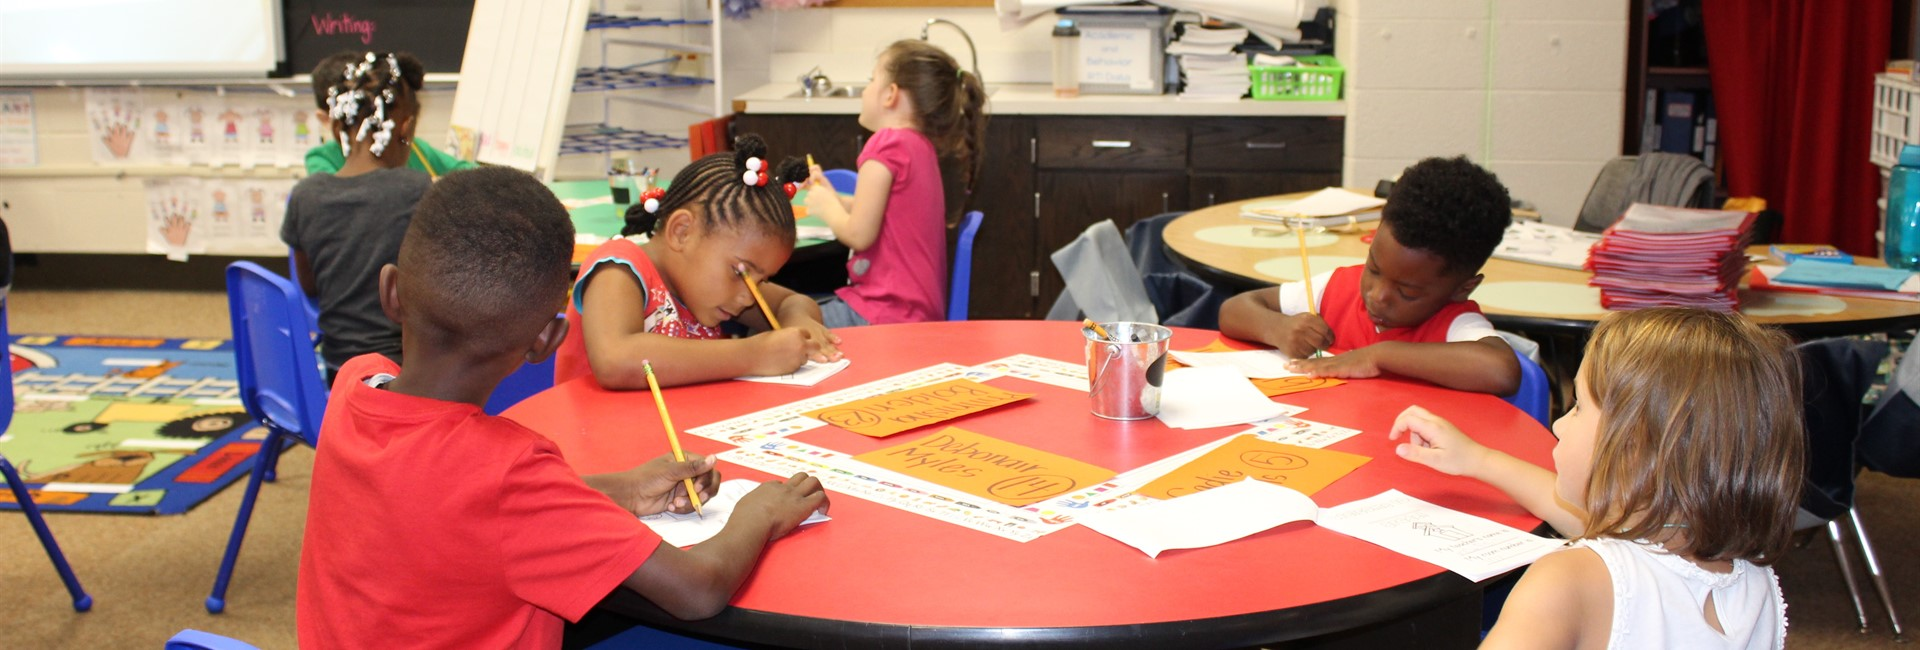 Students are hard at work on the first day of school.